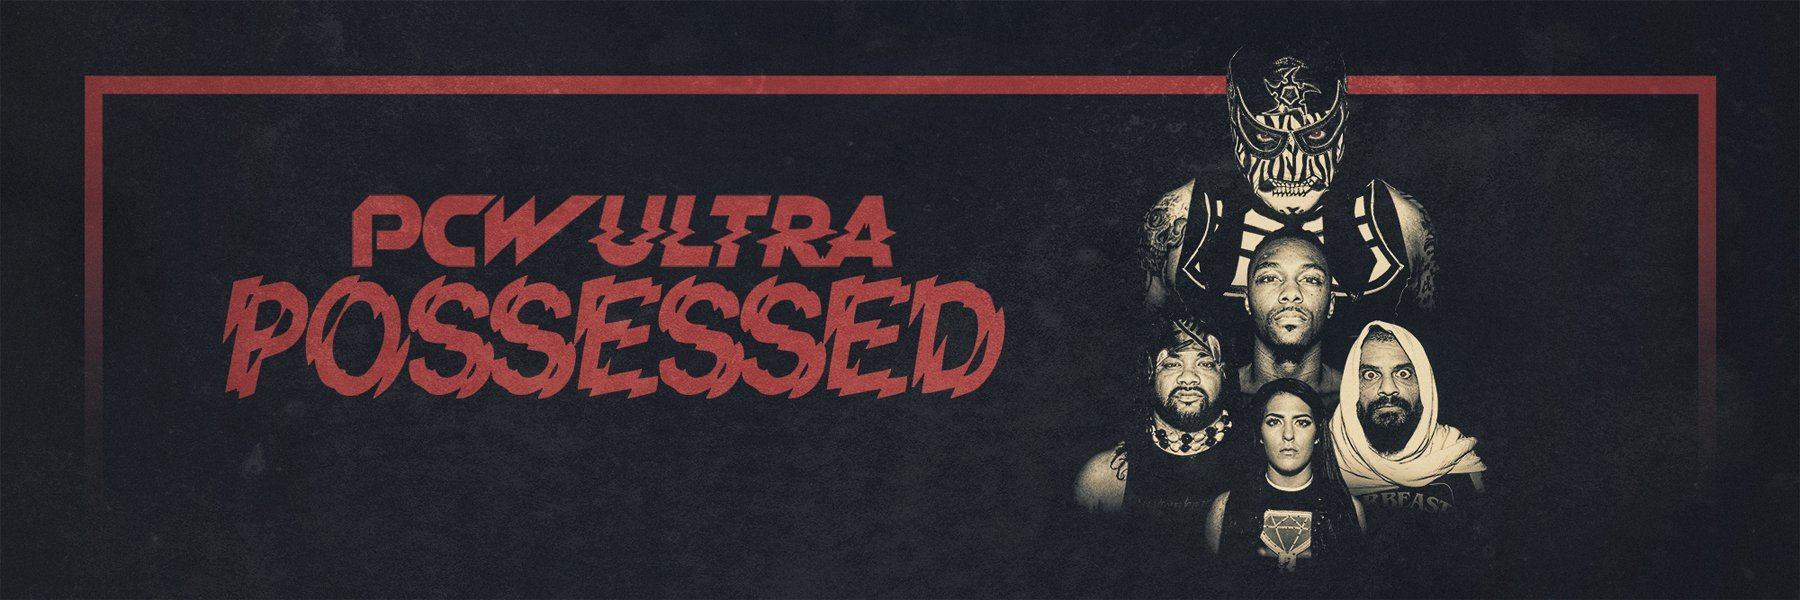 PCW ULTRA | POSSESSED: Subscribe $4.99mo. // Rent $2.99 // Buy $9.99